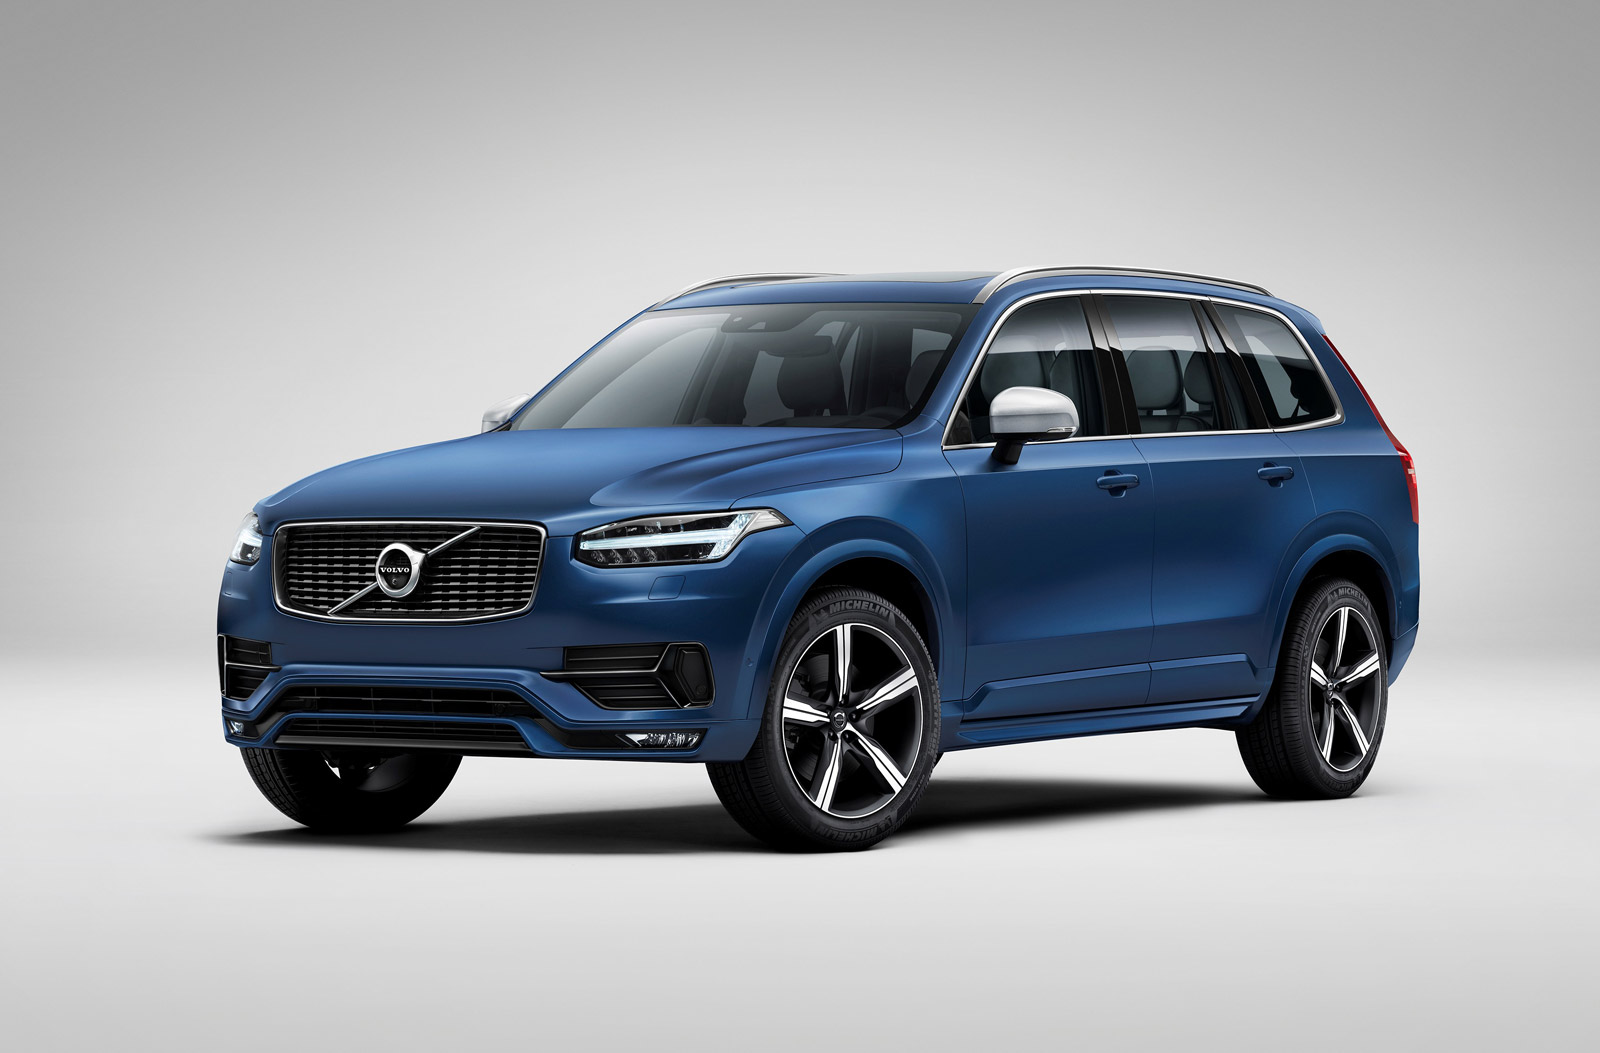 deliveries halted on 2016 volvo xc90 due to airbag issue